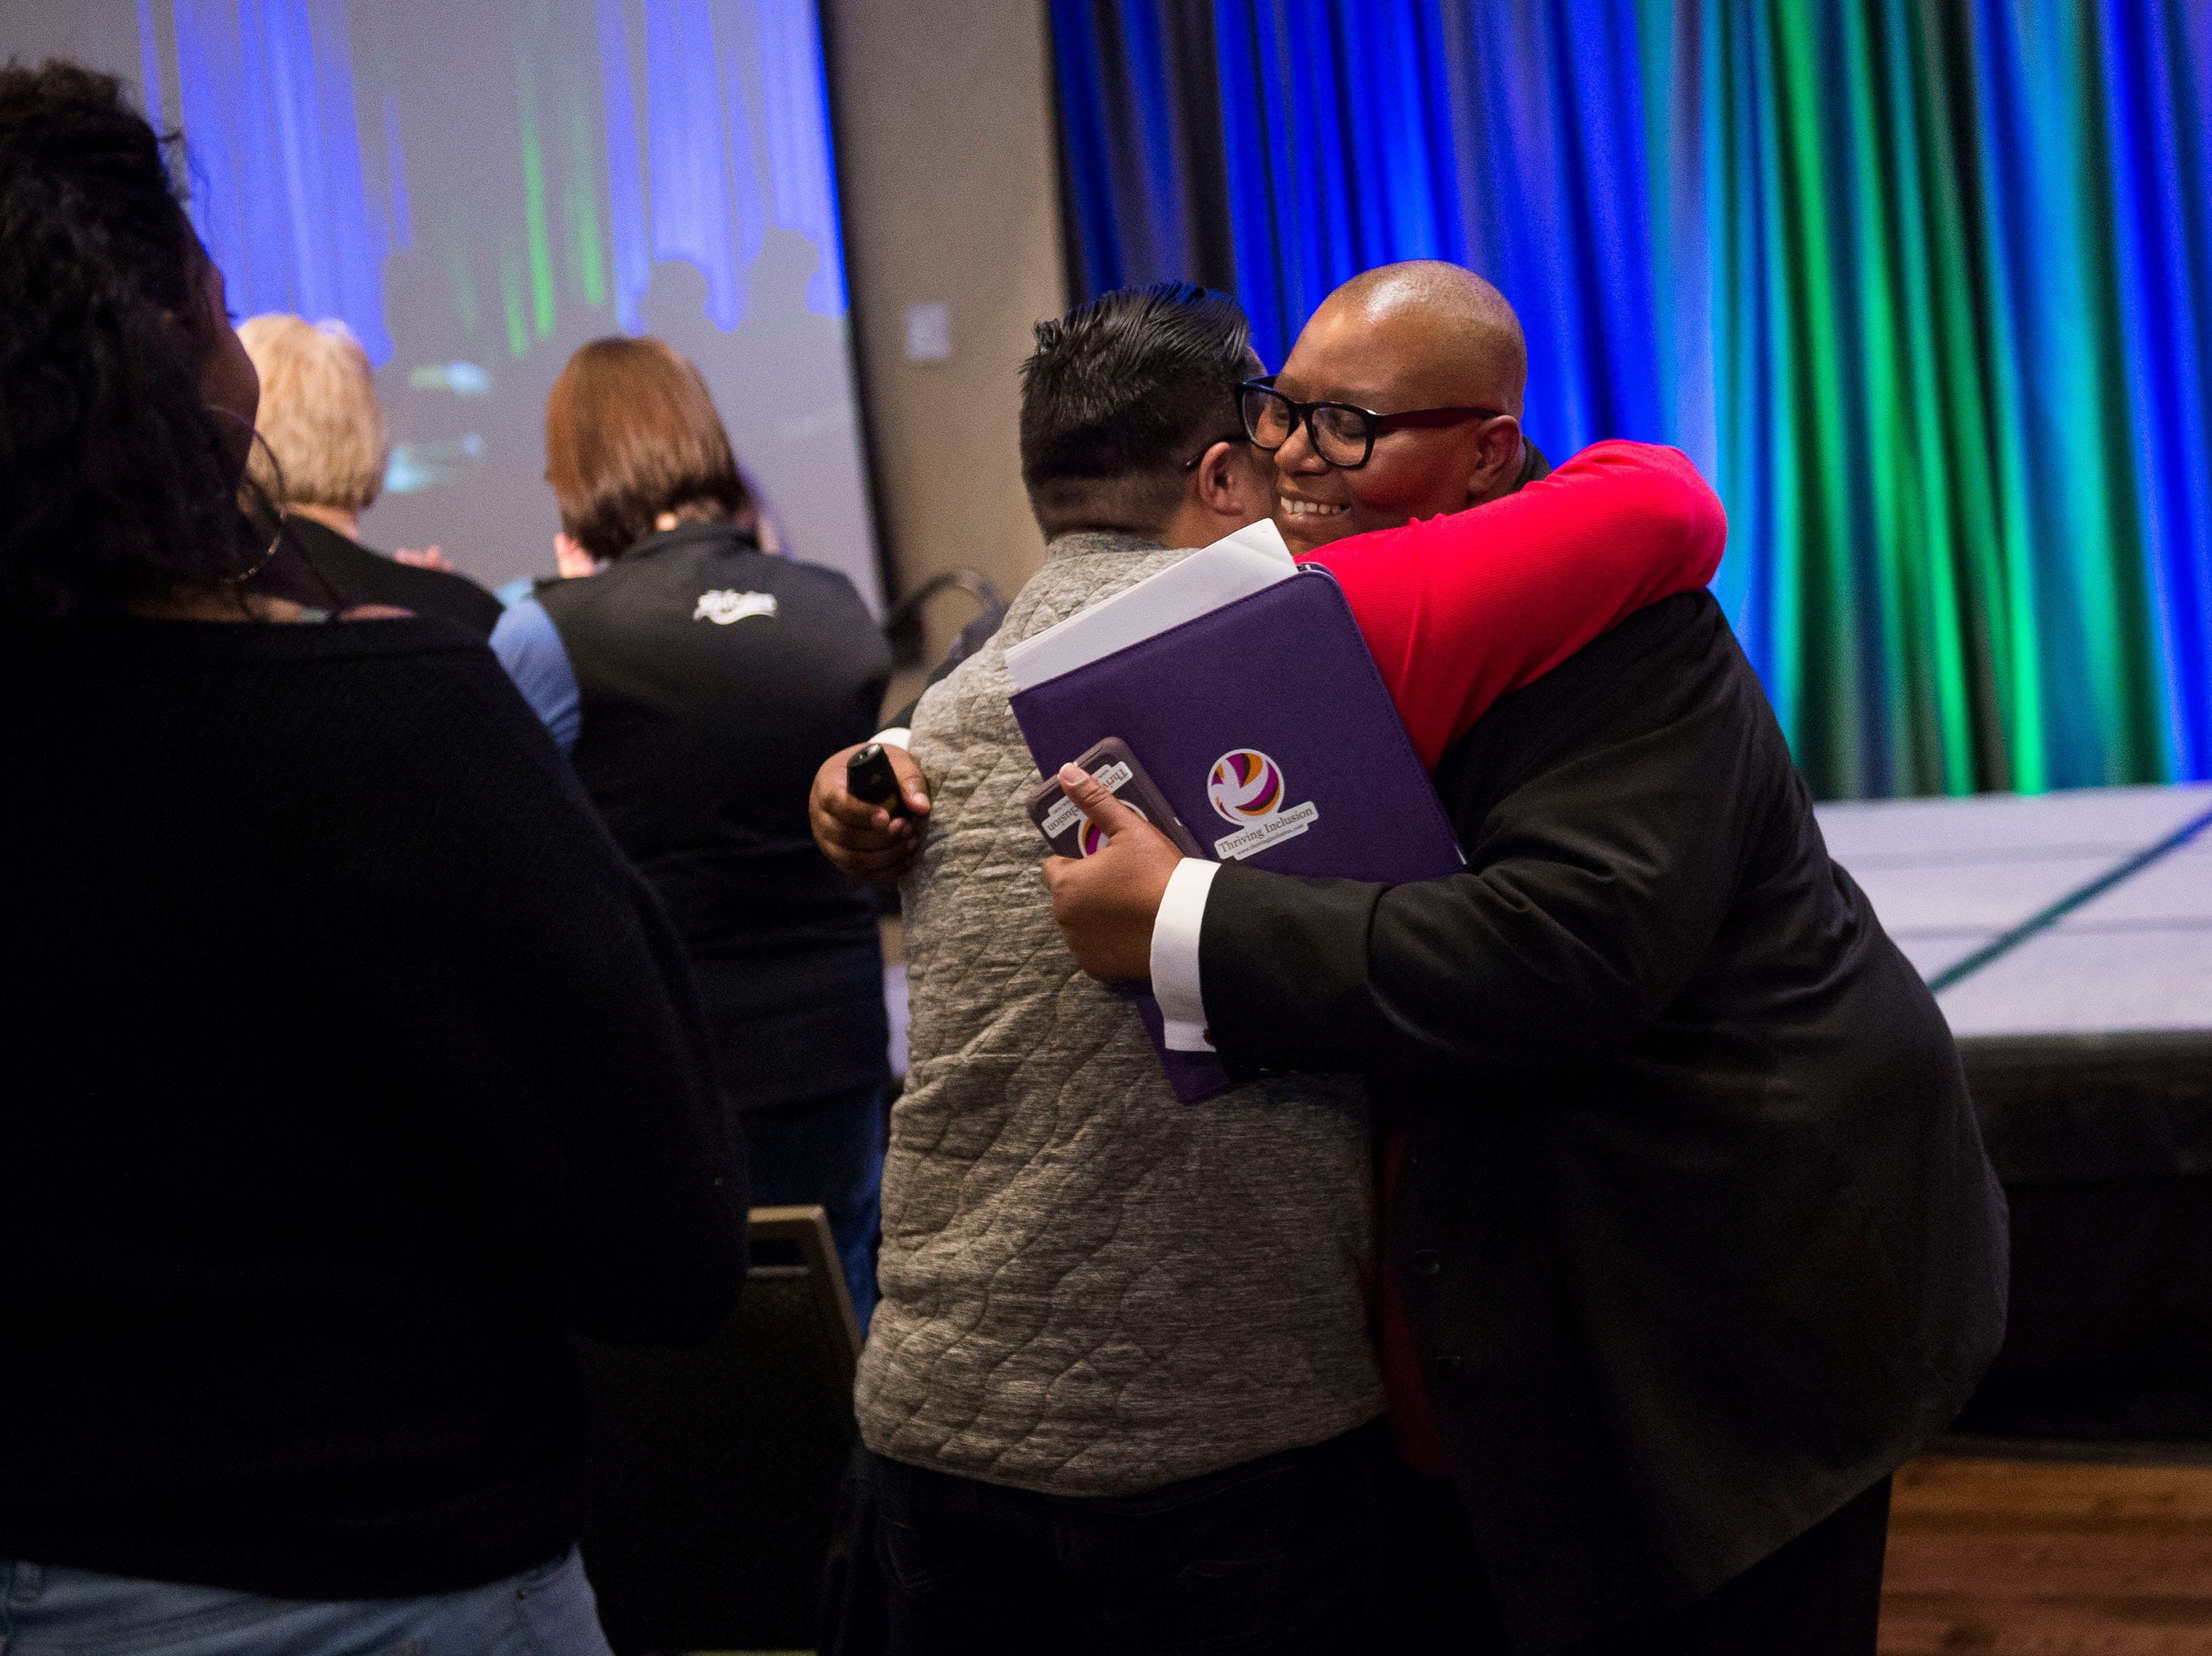 Dr. Martin Luther King, Jr. March & Celebration keynote speaker Fleurette King, right, hugs an audience member after her speech on Monday, Jan. 21, 2019, at the Lory Student Center on the Colorado State University campus in Fort Collins, Colo.